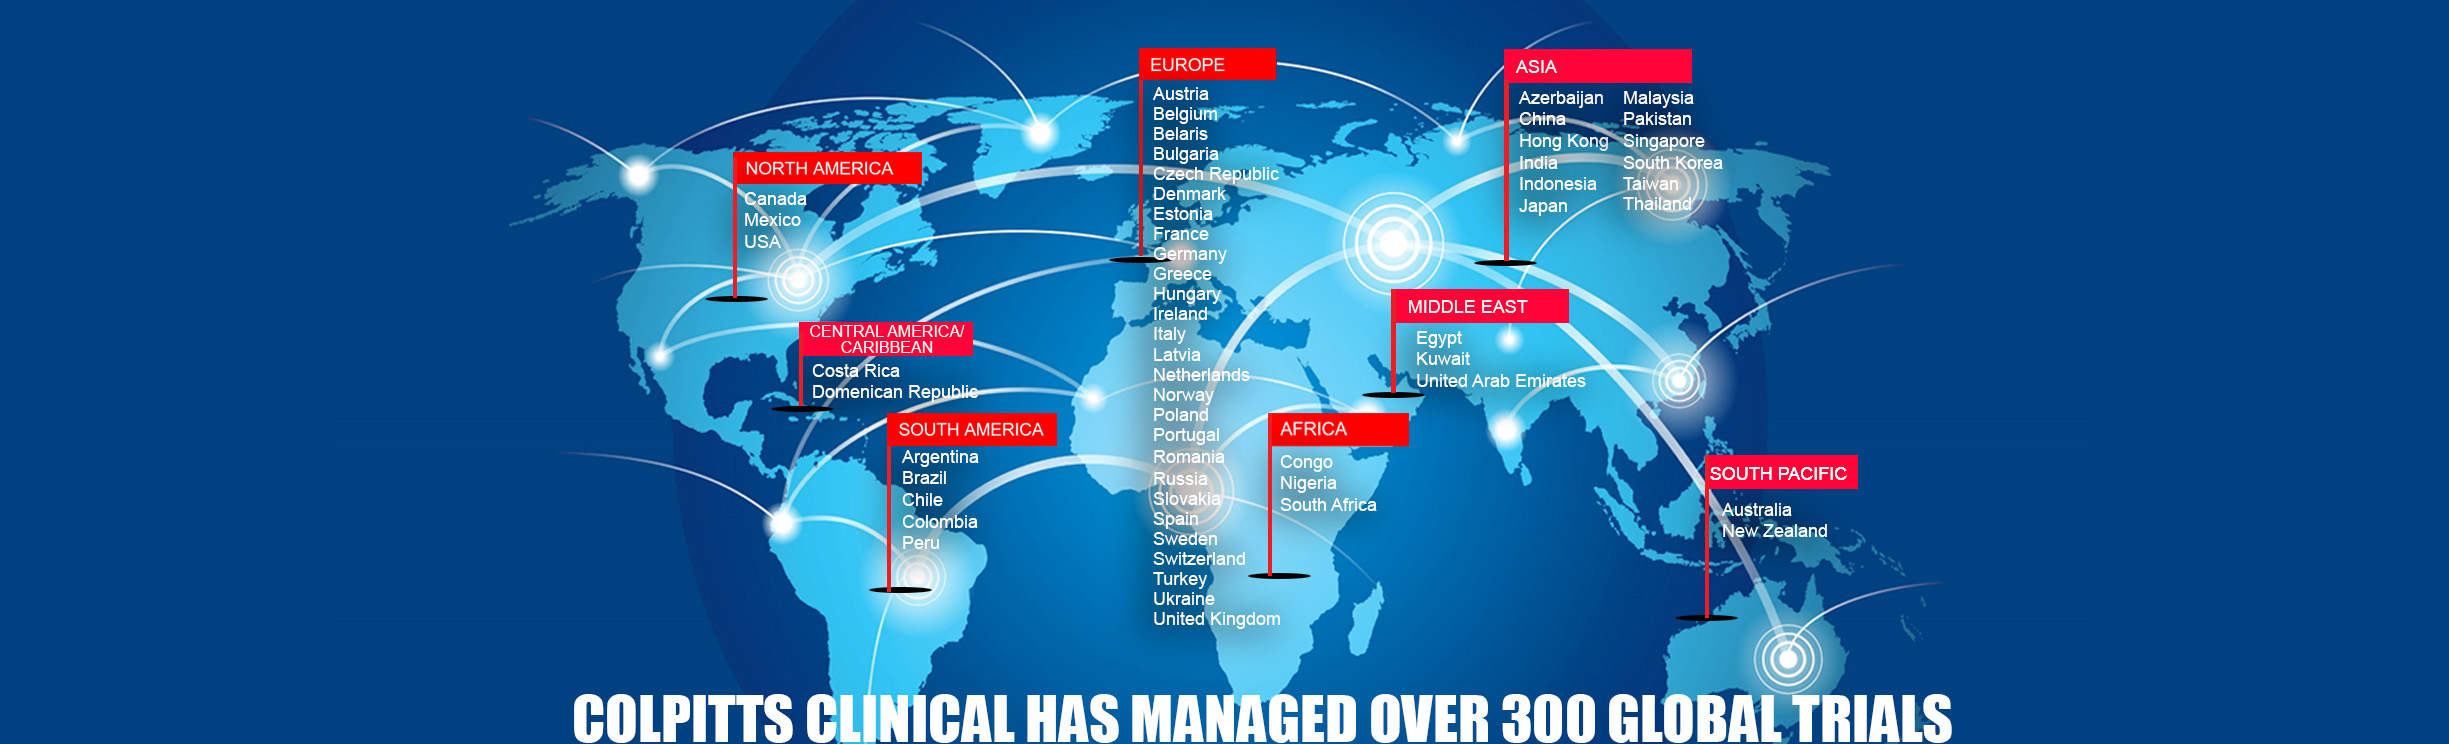 globally conducting clinical trials